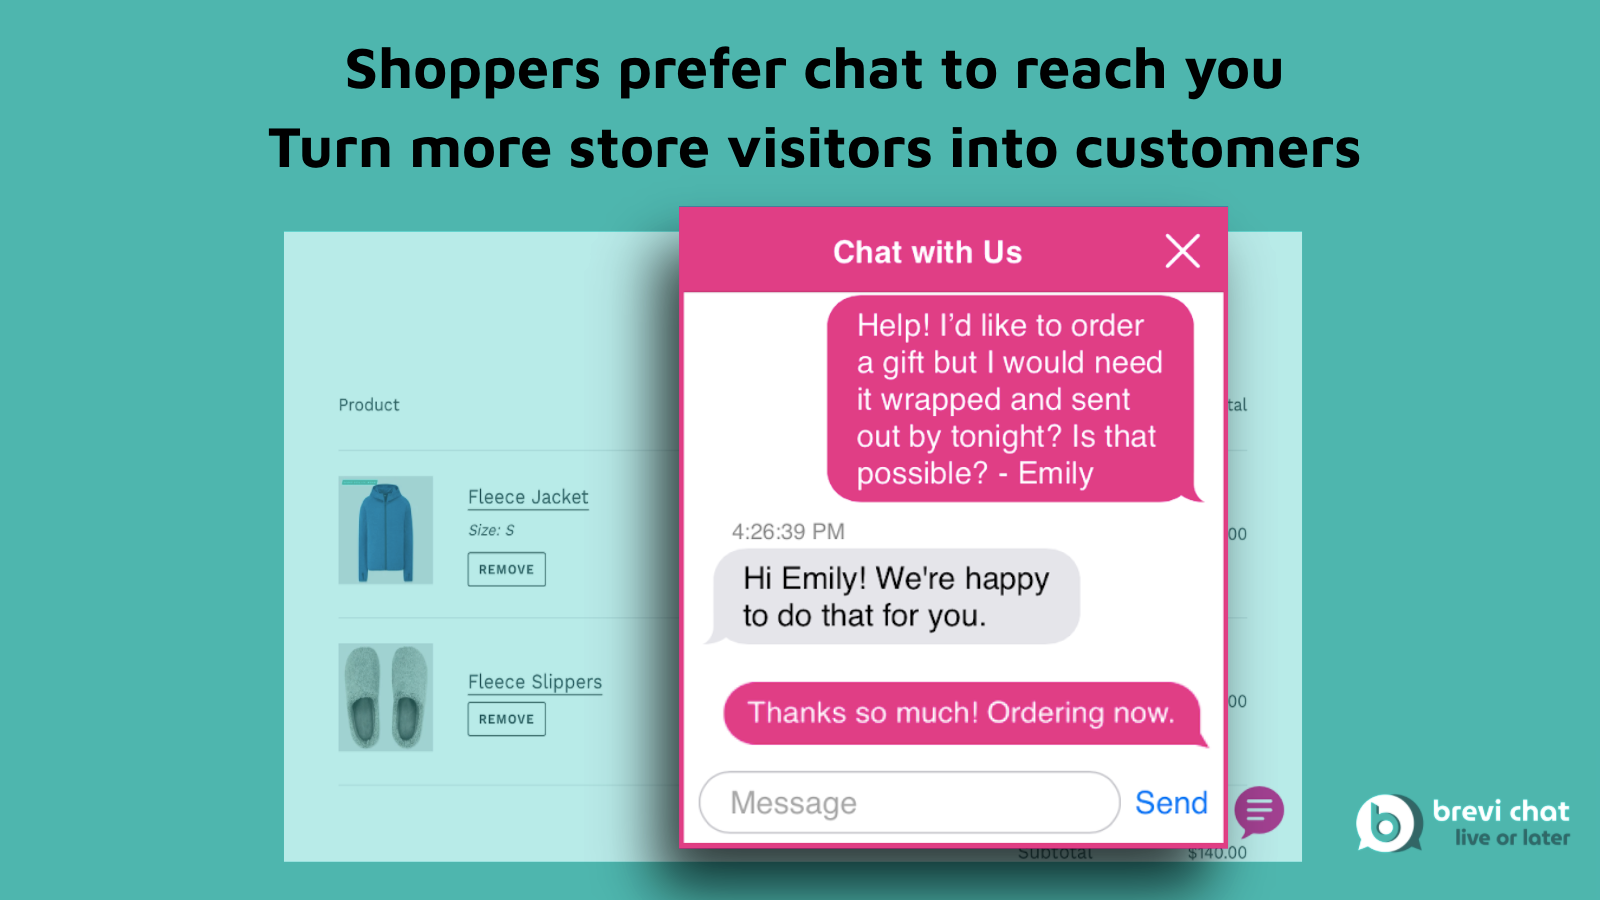 Shoppers prefer chat. Turn more store visitors into customers.